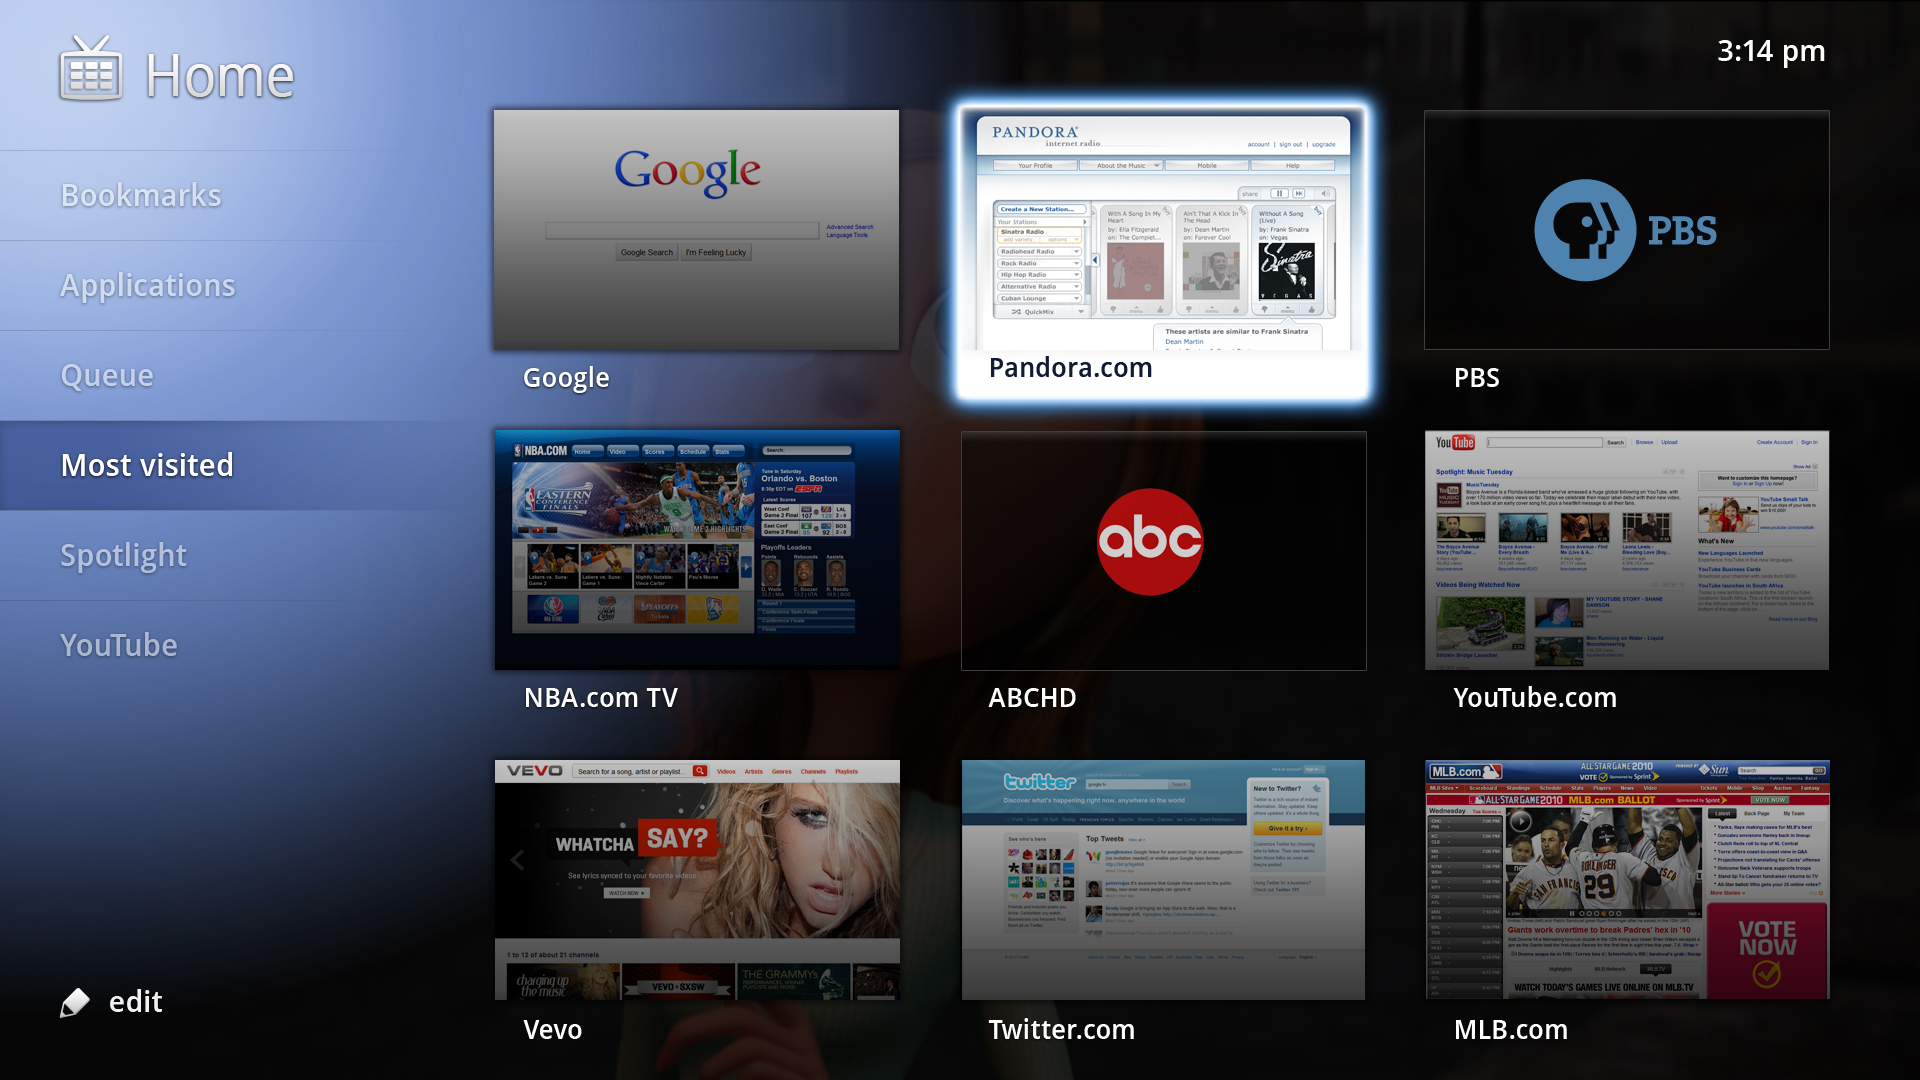 Google TV Update Rolls Out On Sunday: Better Content